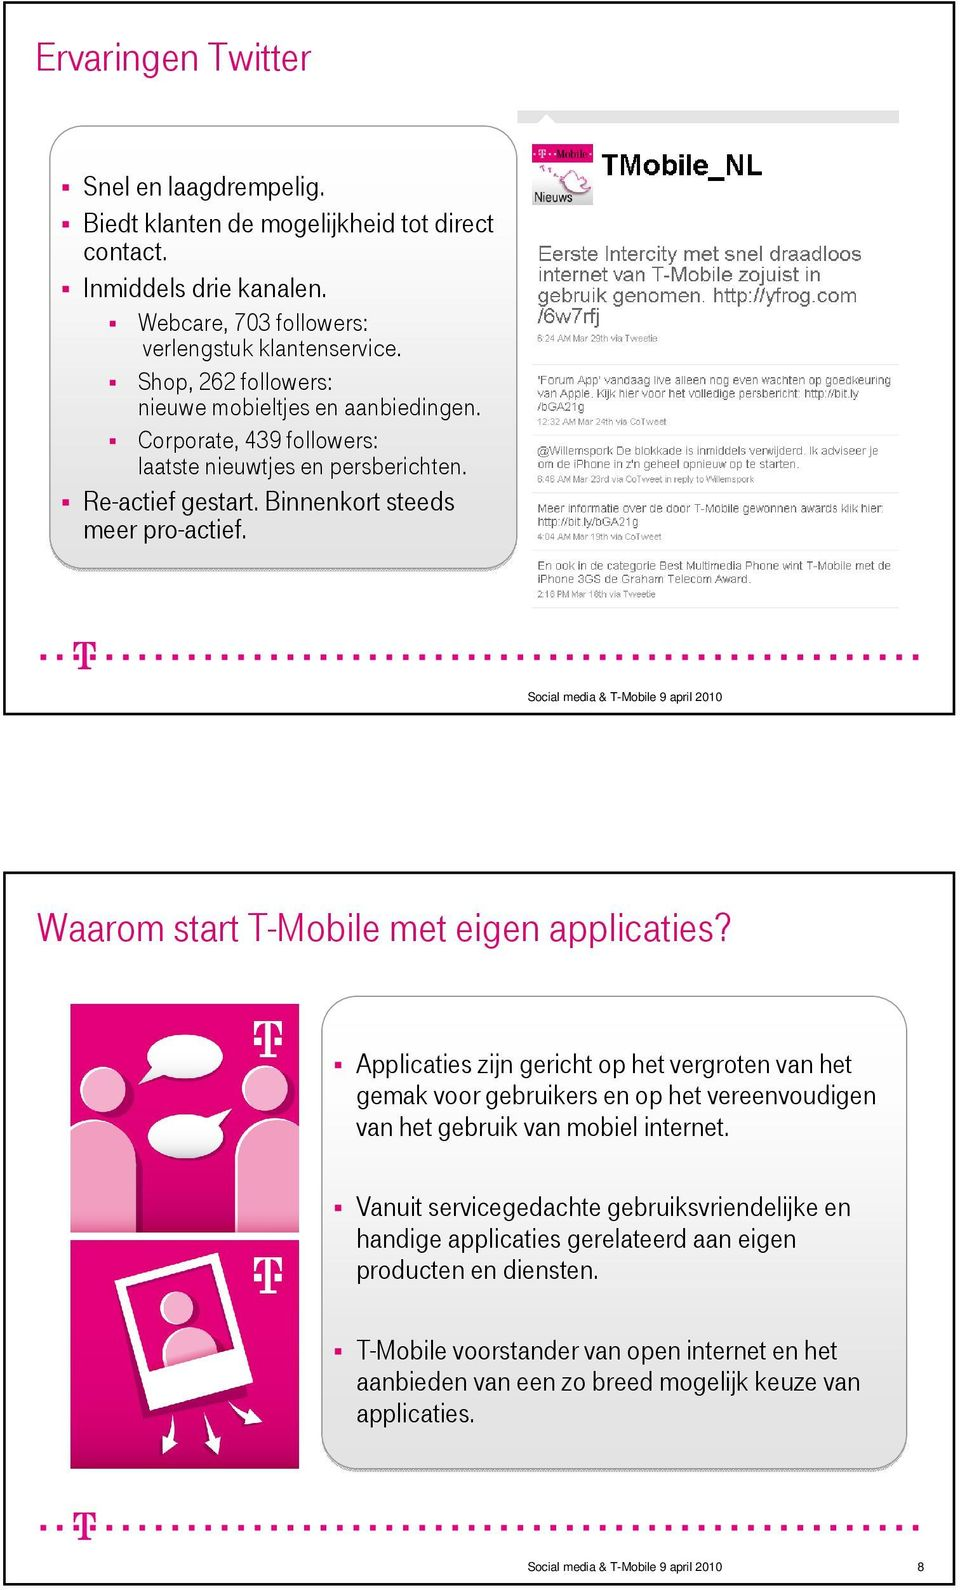 Social media & T-Mobile 9 april 2010 Waarom start T-Mobile met eigen applicaties?